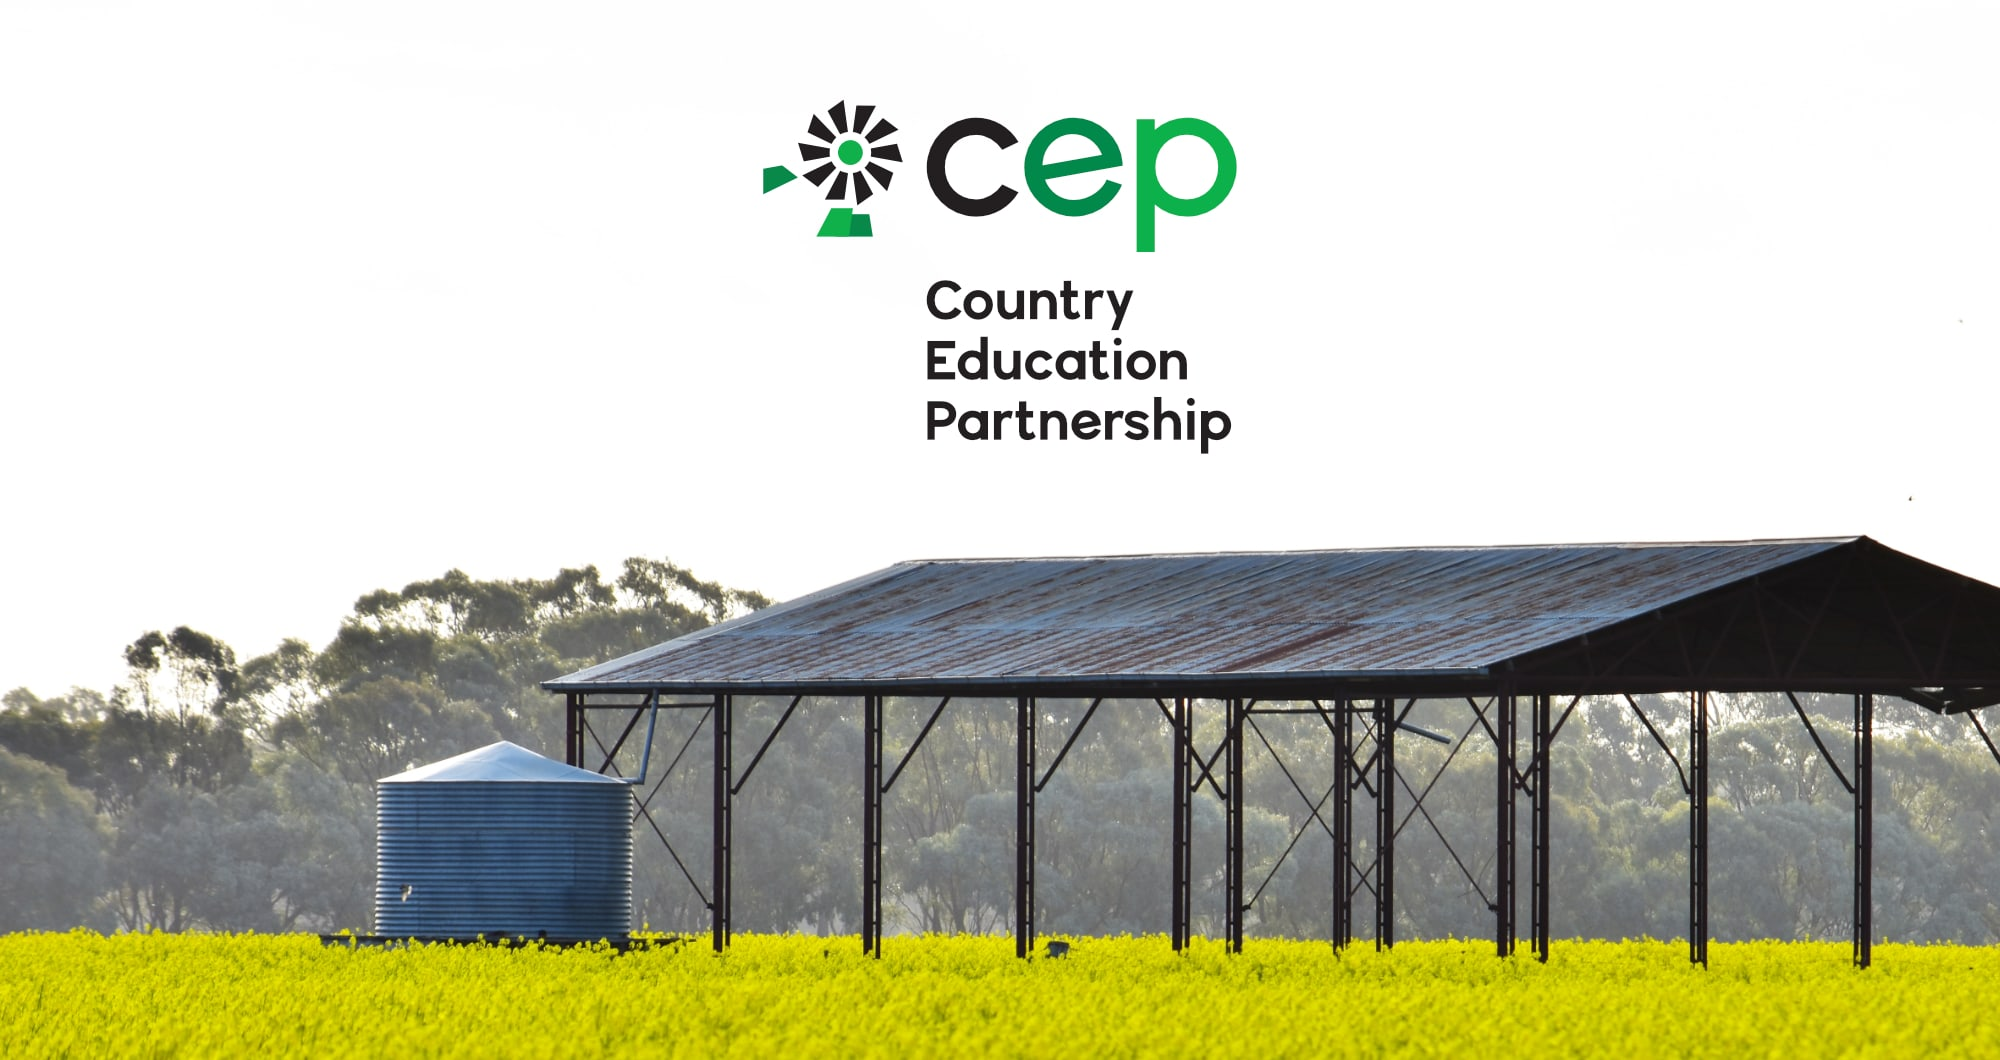 Country Education Partnership branding